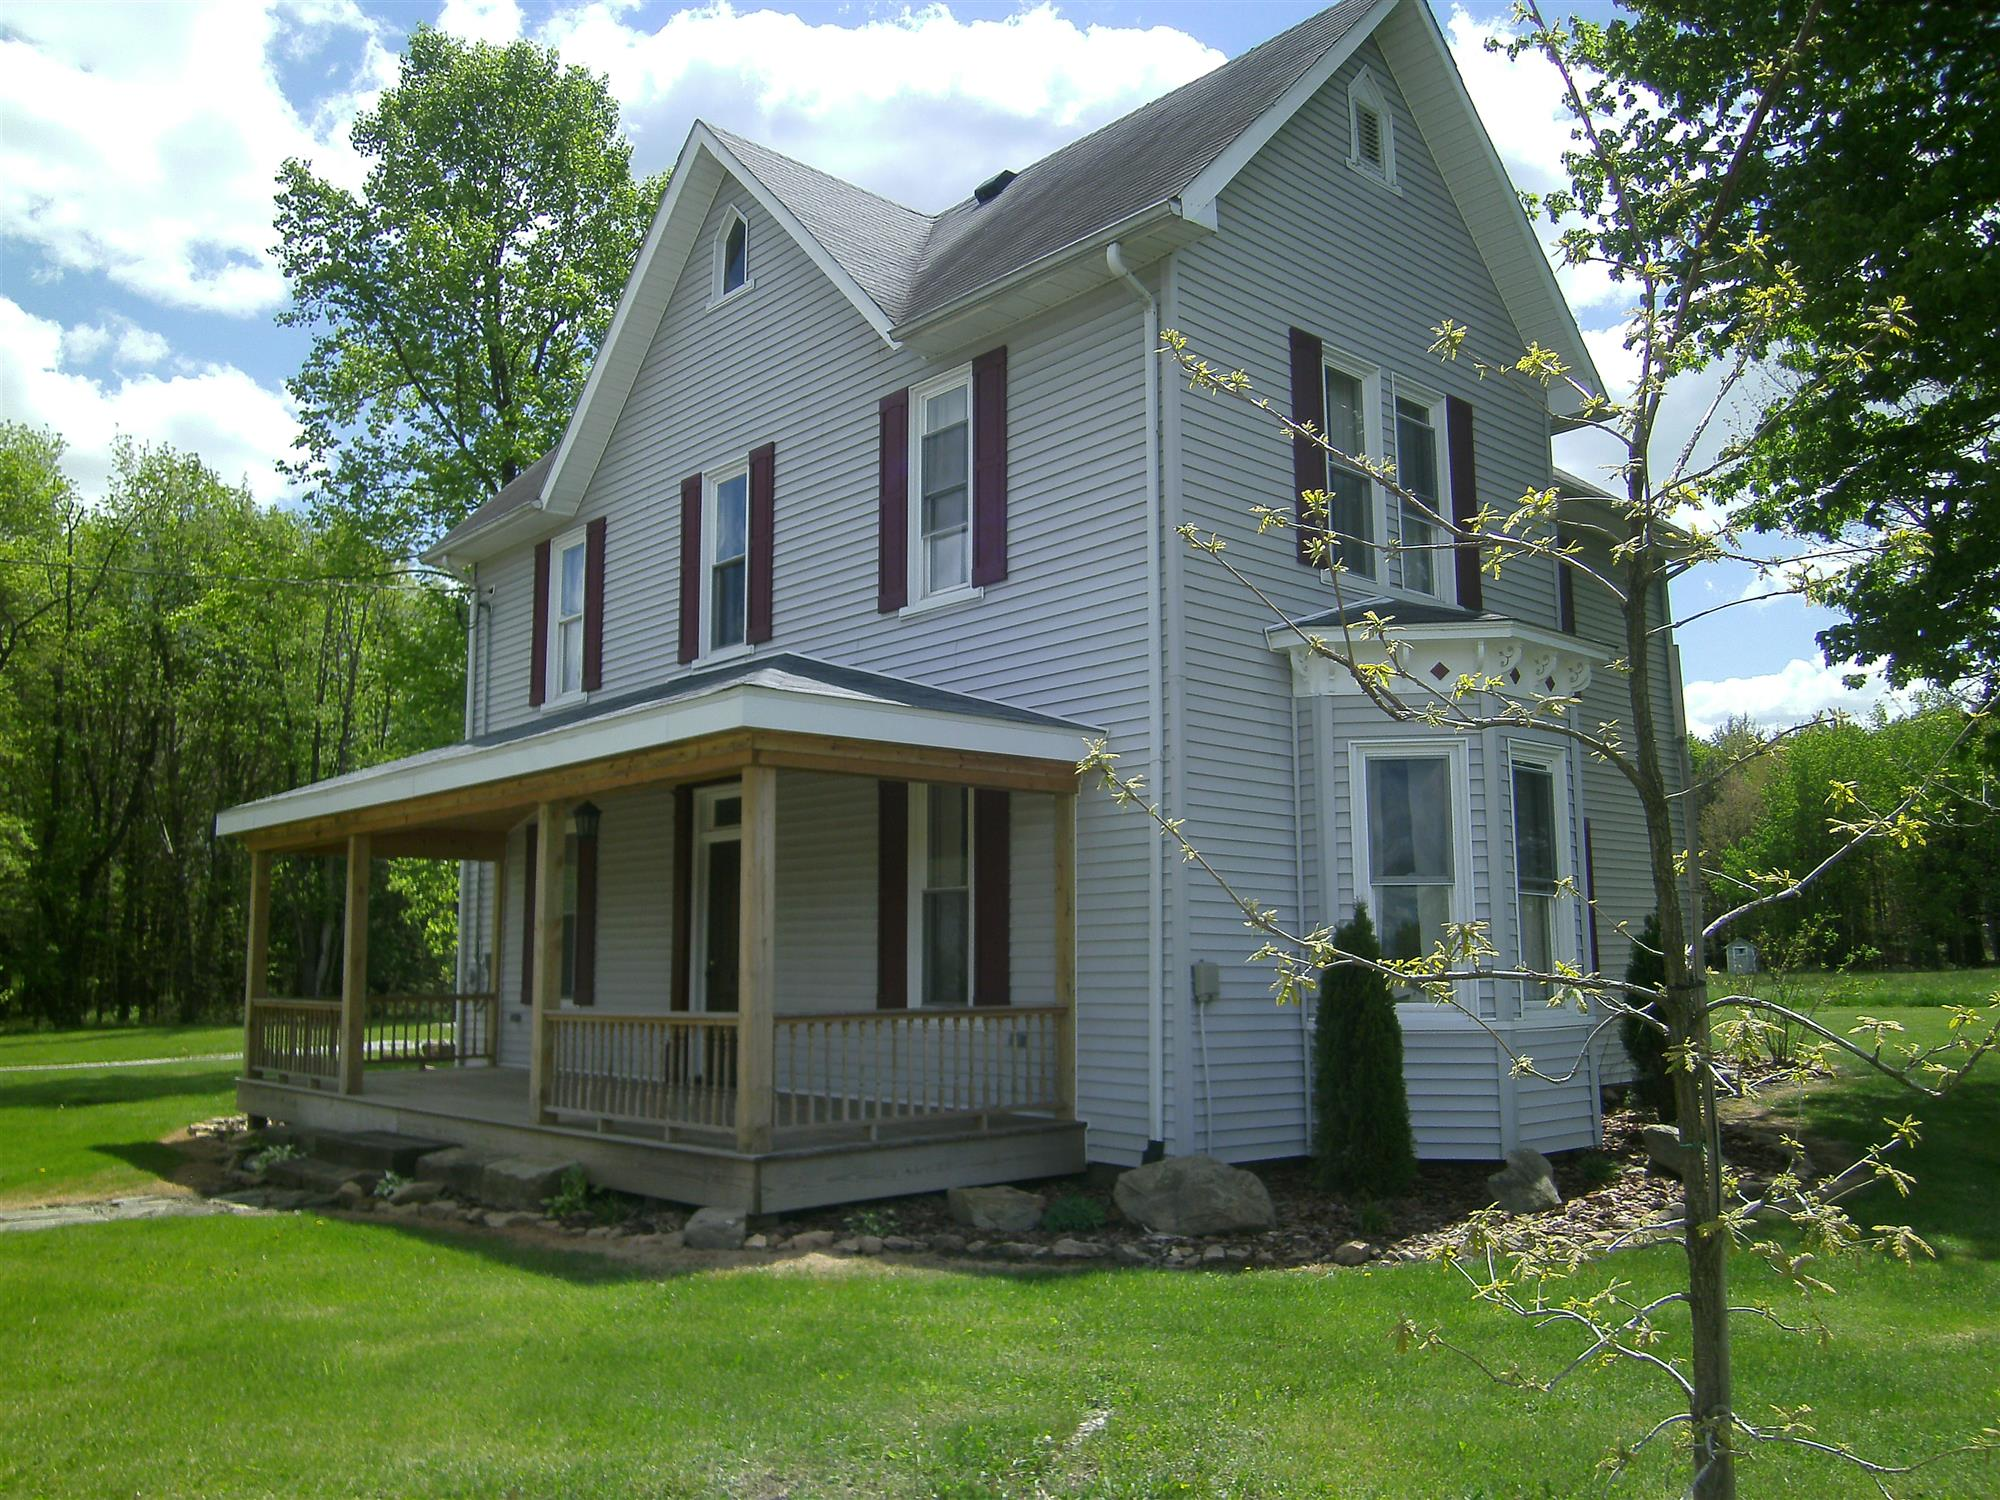 410 Foxburg Road -          This is a beautifully restored Victorian farmhouse on 3 acres of land near I-80 and Foxburg in...